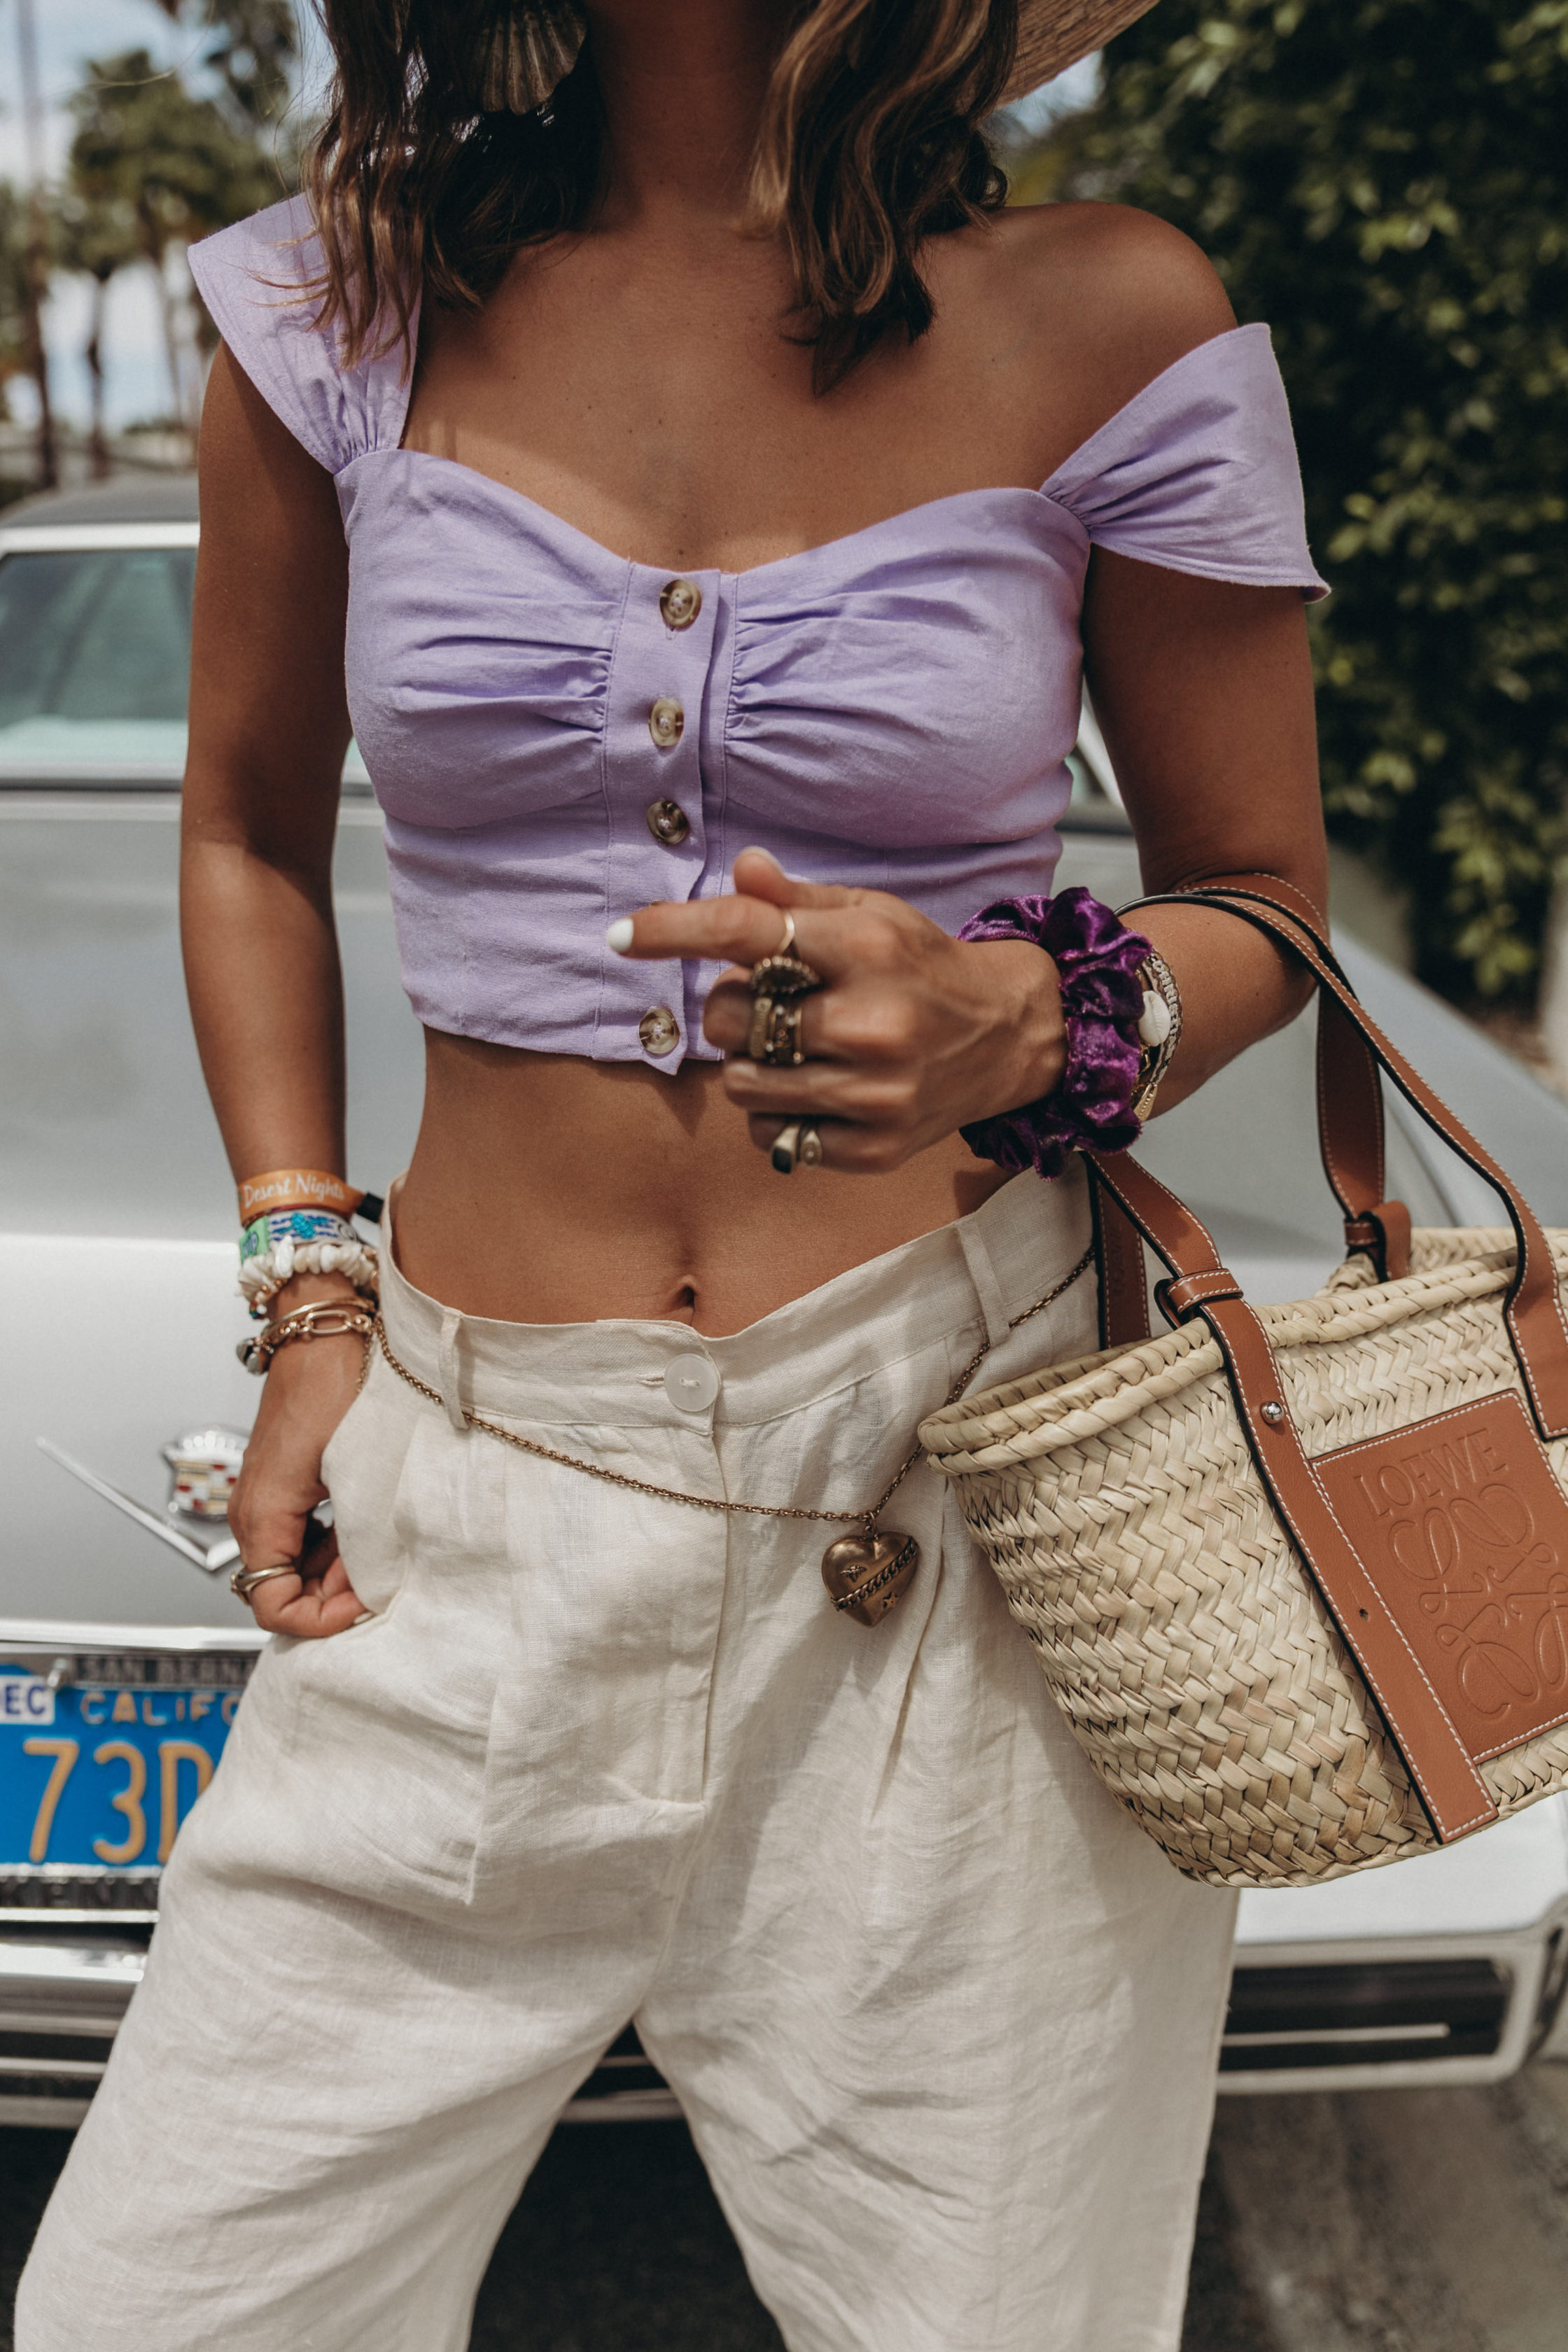 Sara of Collage Vintage wearing a LPA lilac top and baggy pants for attending Coachella 2019